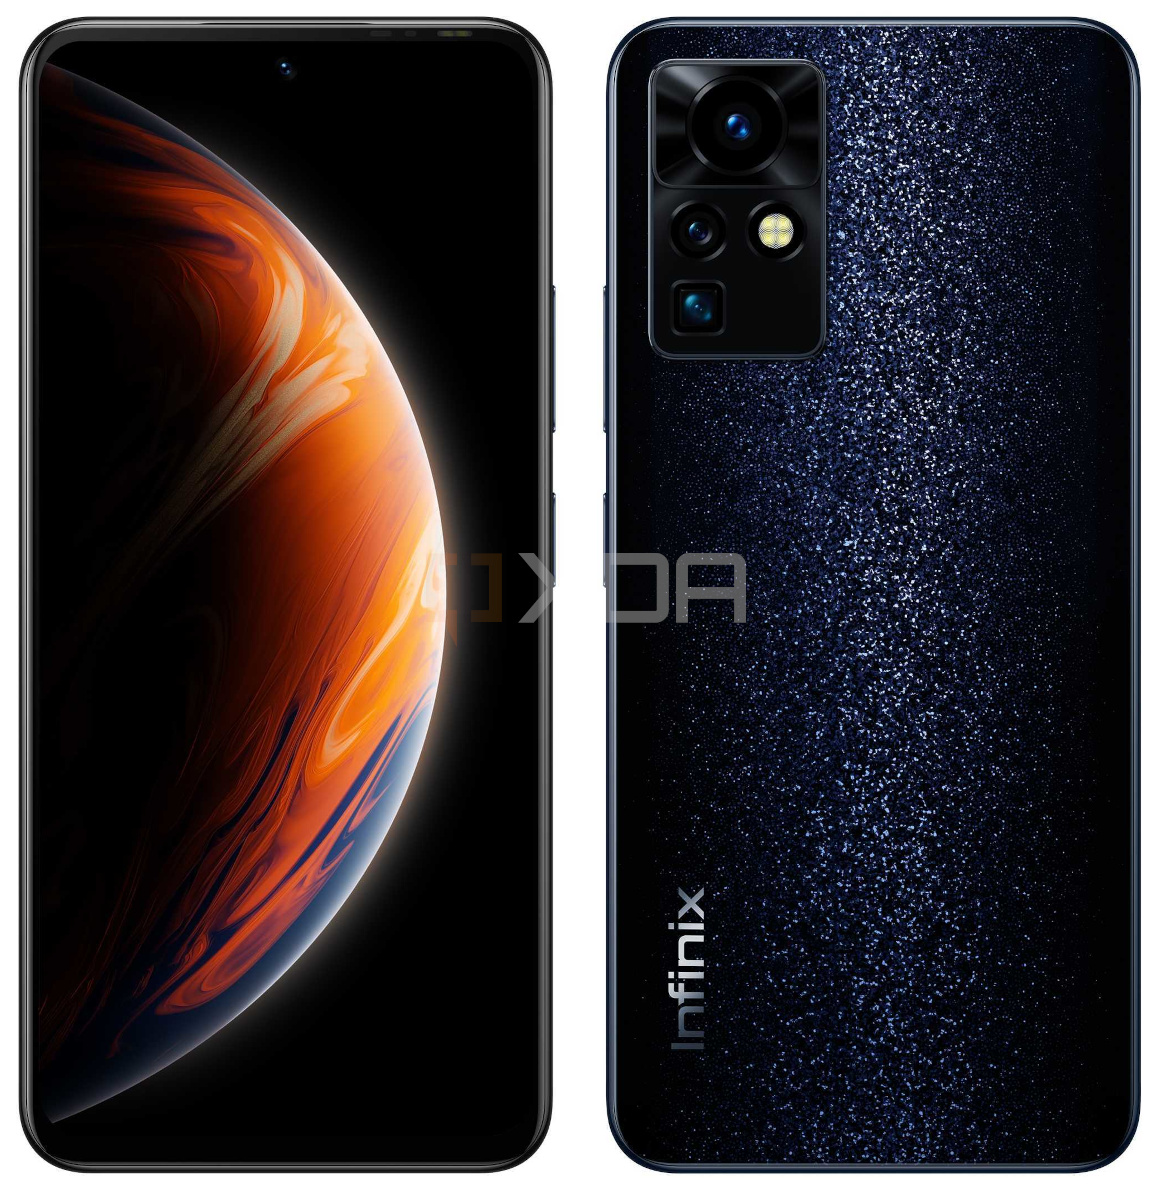 Infinix Zero front and back side-by-side